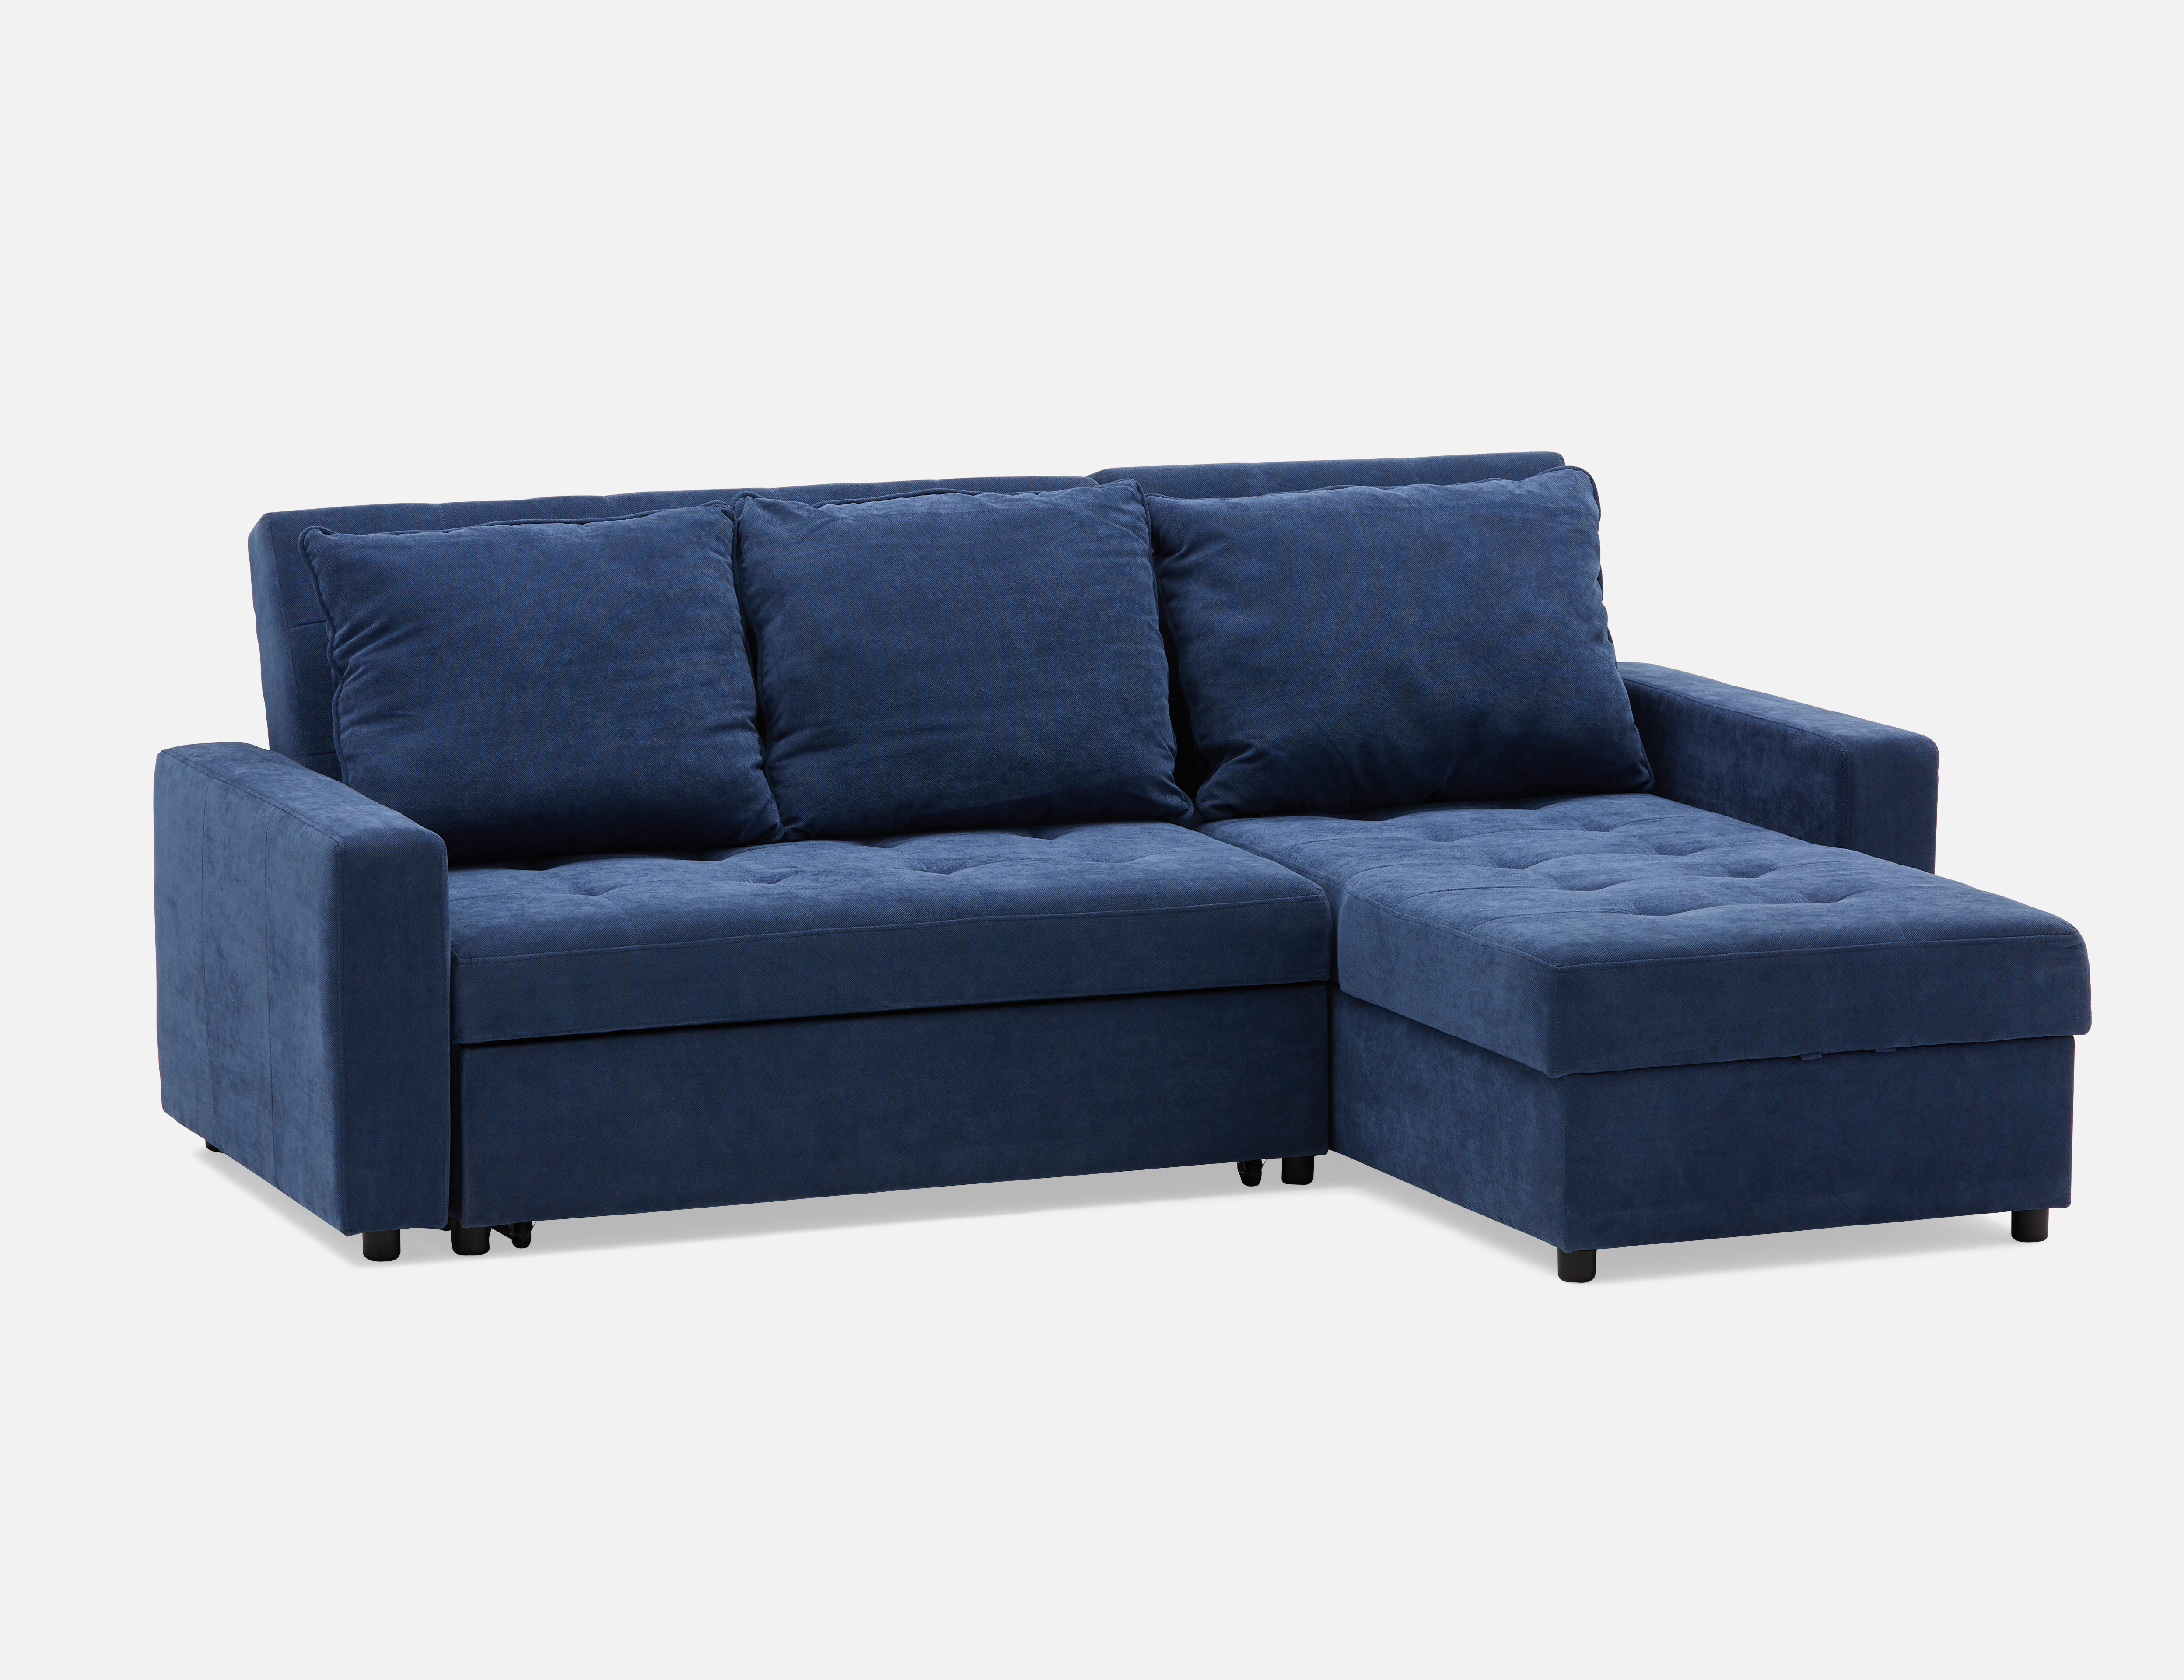 Dark Blue Interchangeable Sectional Sofa Bed Structube Megan Sofa Bed With Storage Sectional Sofa Bed Storage